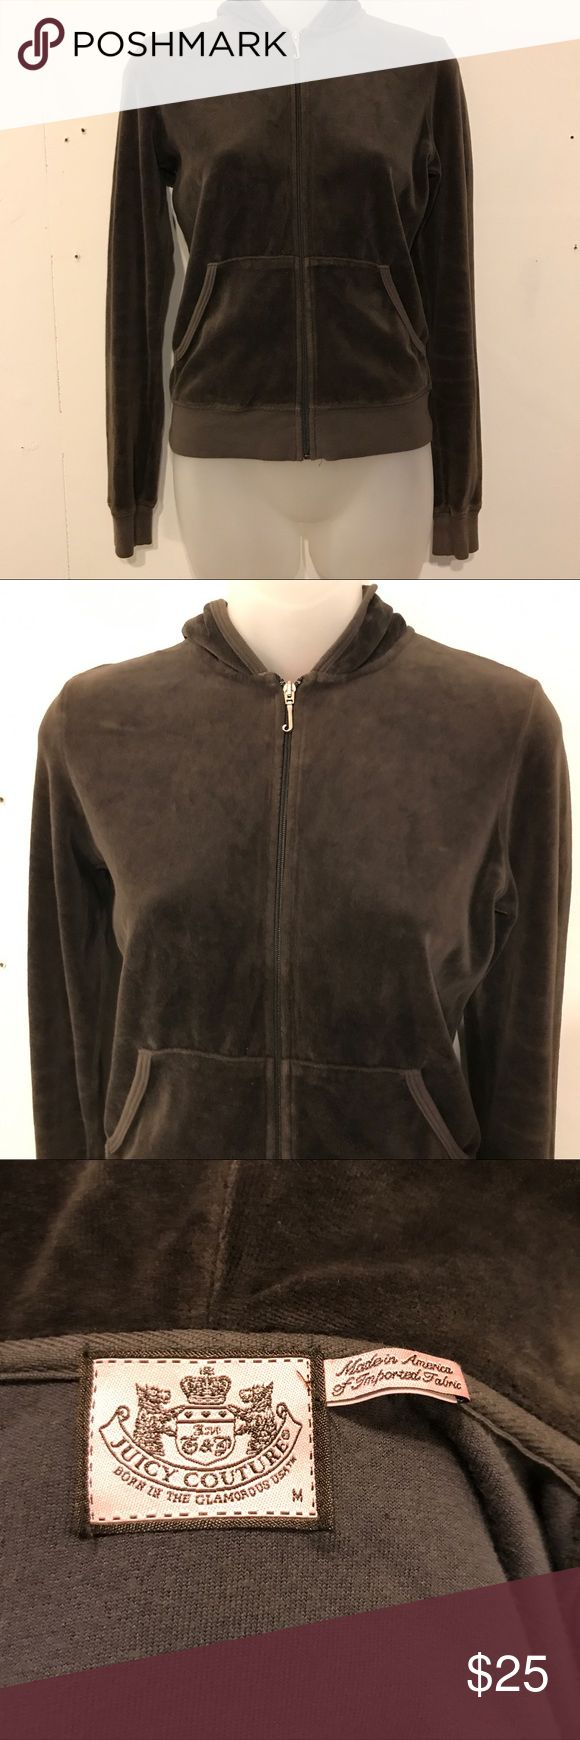 Juicy couture hoodie Brown velour juicy couture zip up hoodie Juicy Couture Sweaters